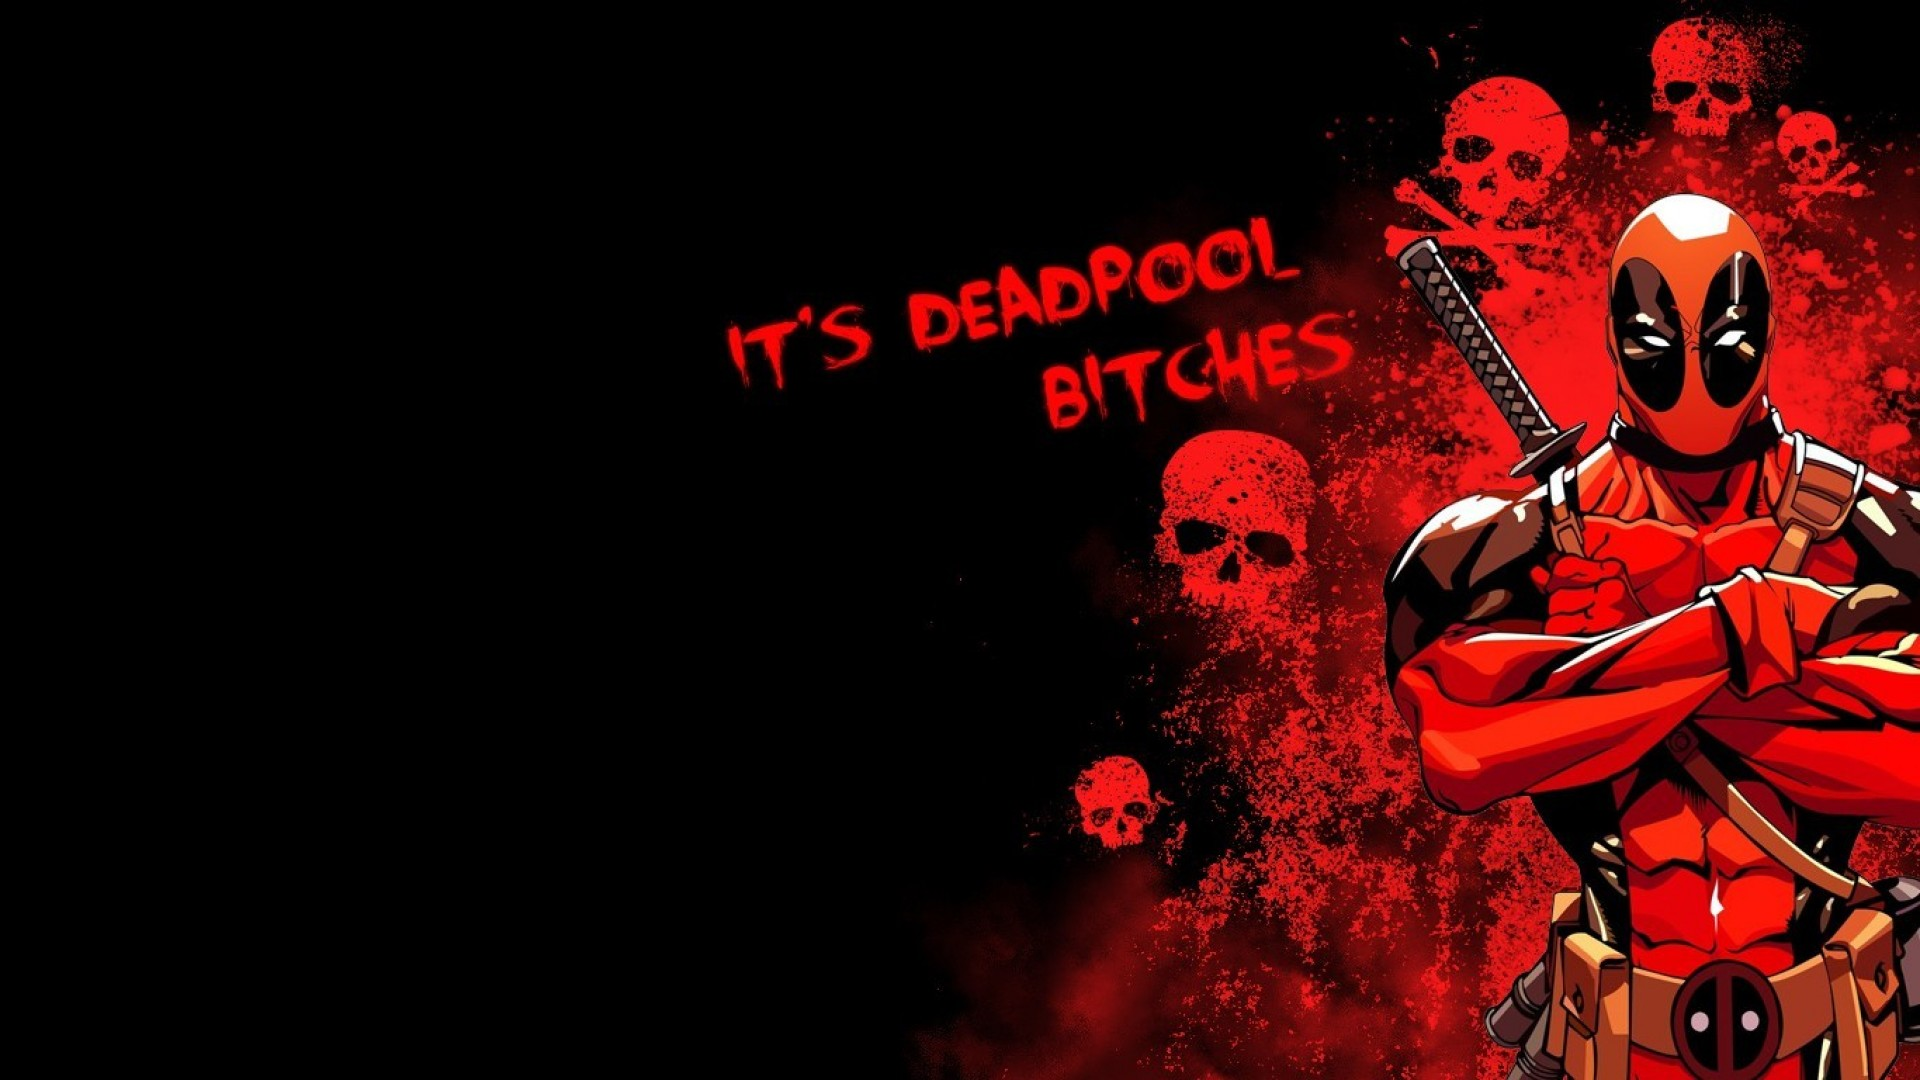 No Love Hd Wallpaper : Deadpool Wallpapers, Pictures, Images